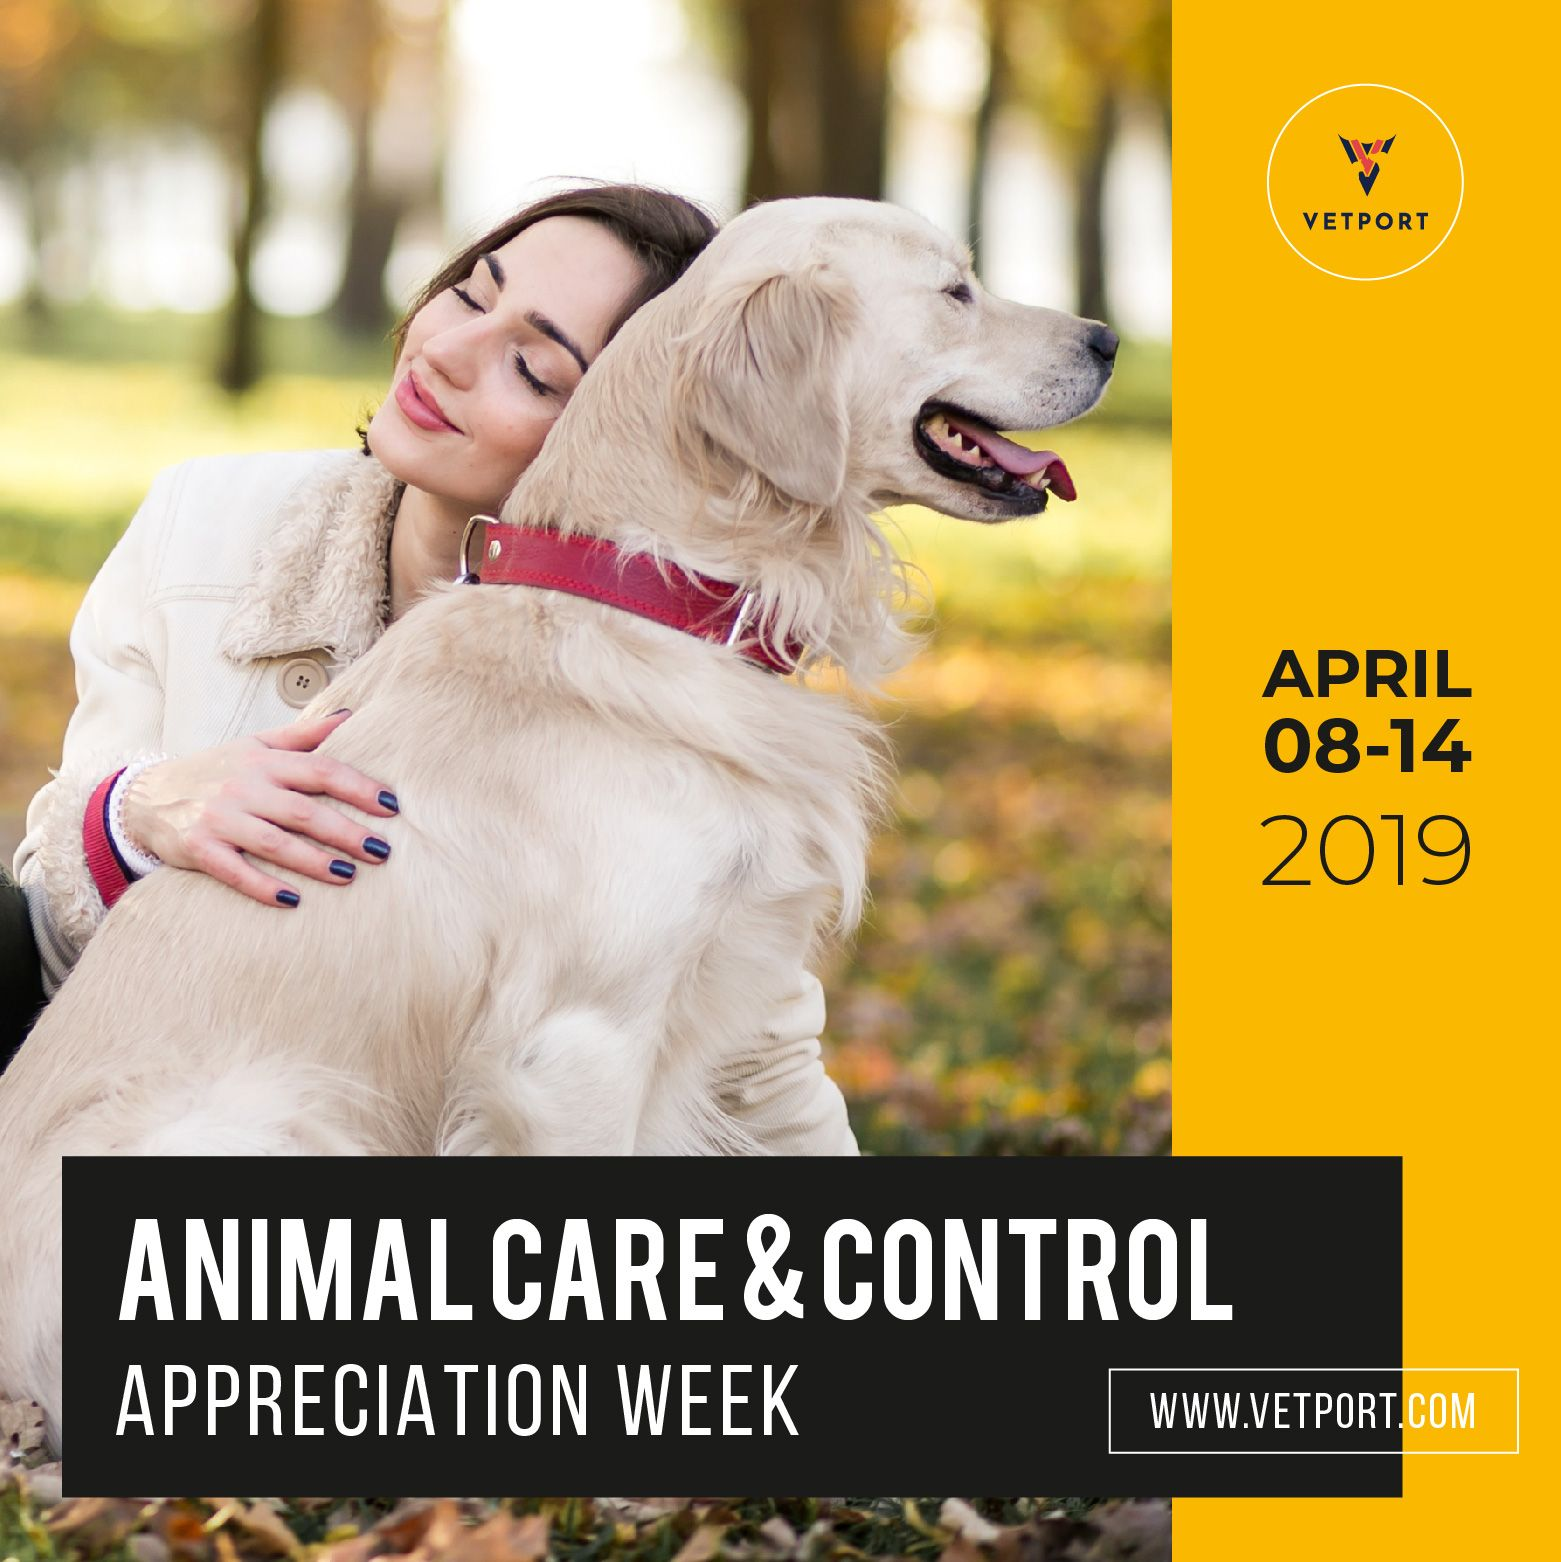 National Animal Care Control Appreciation Week April 08 14